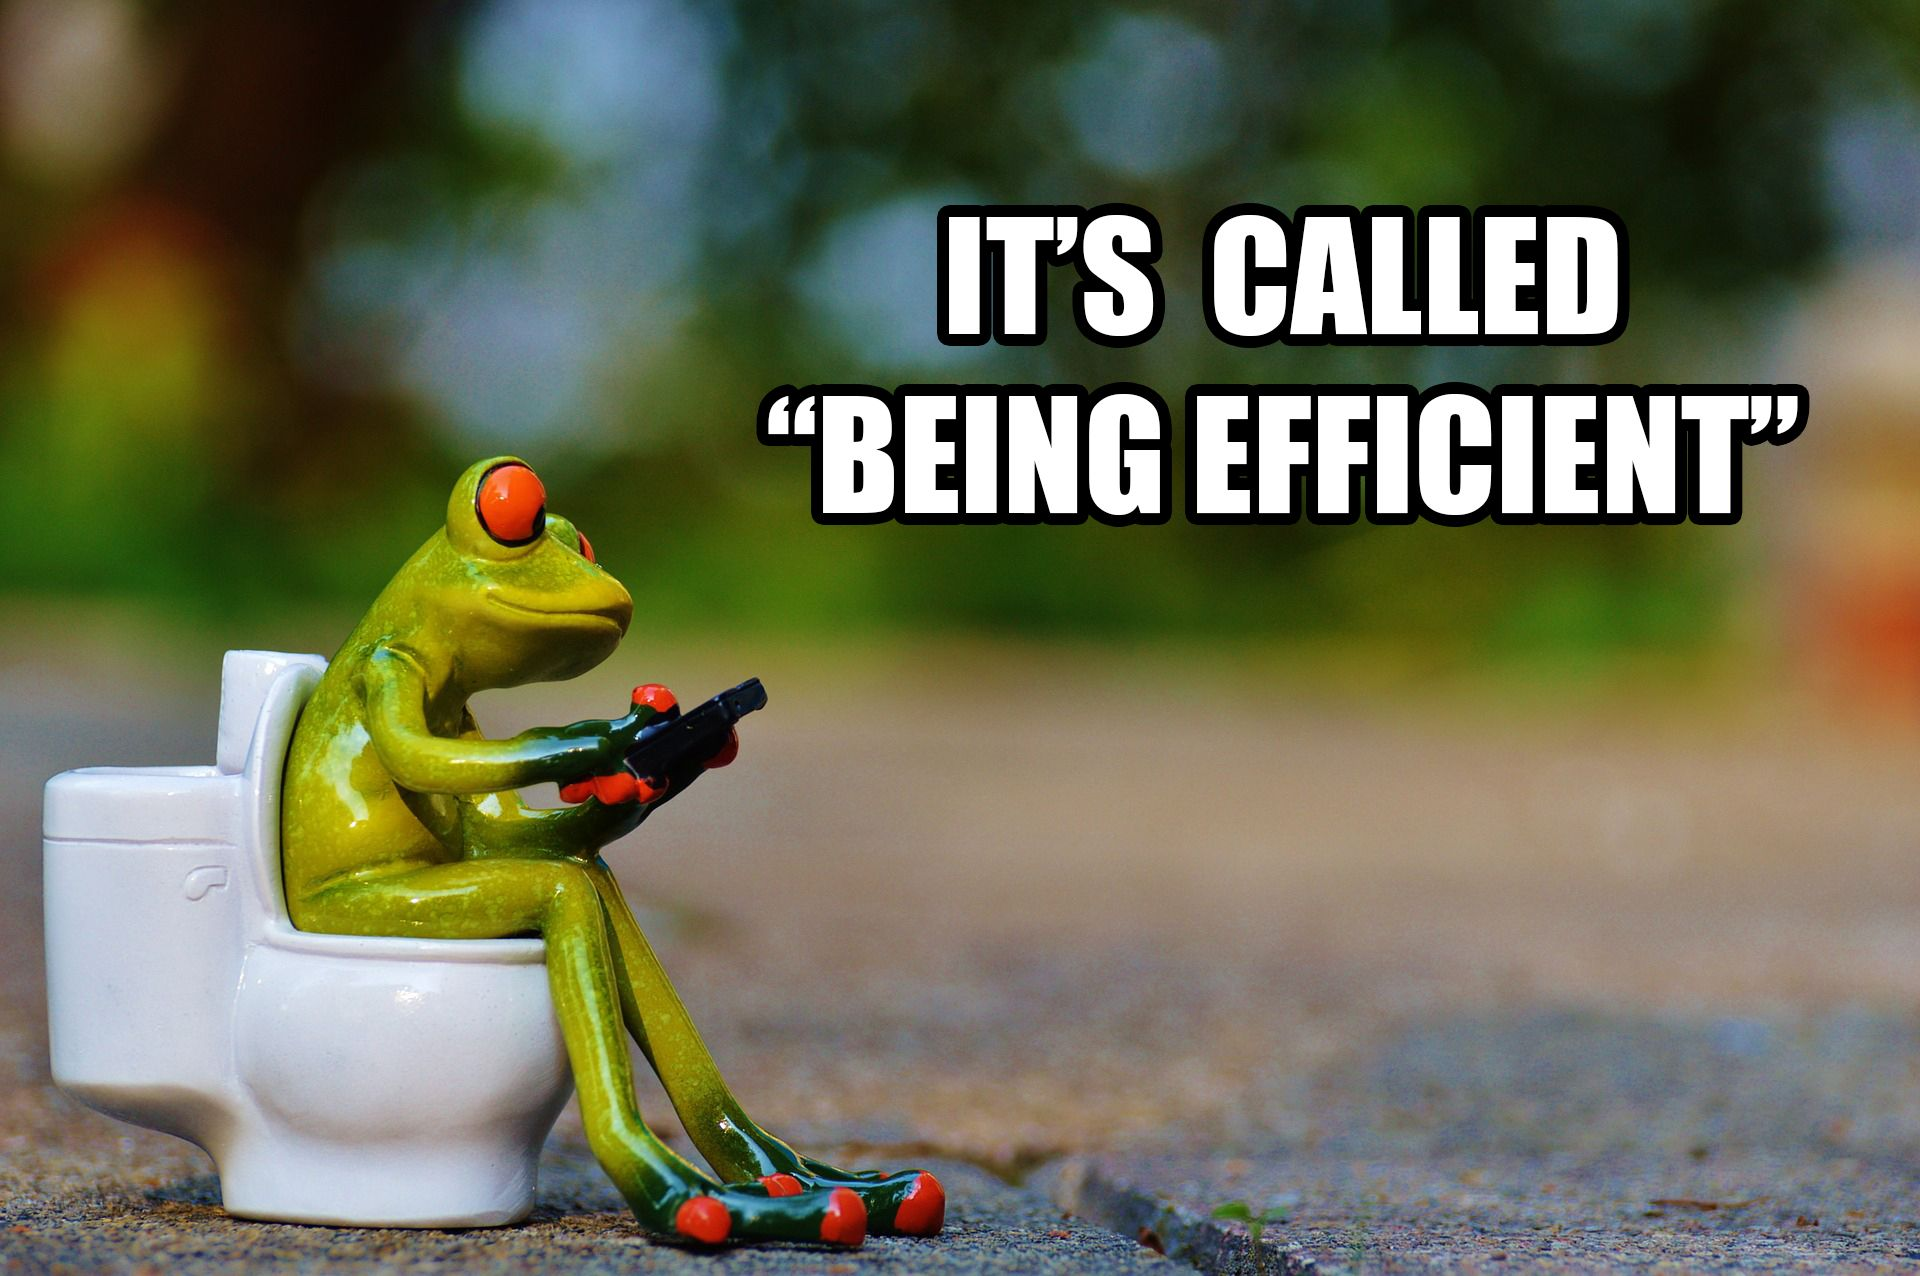 A motivated frog on the toilet